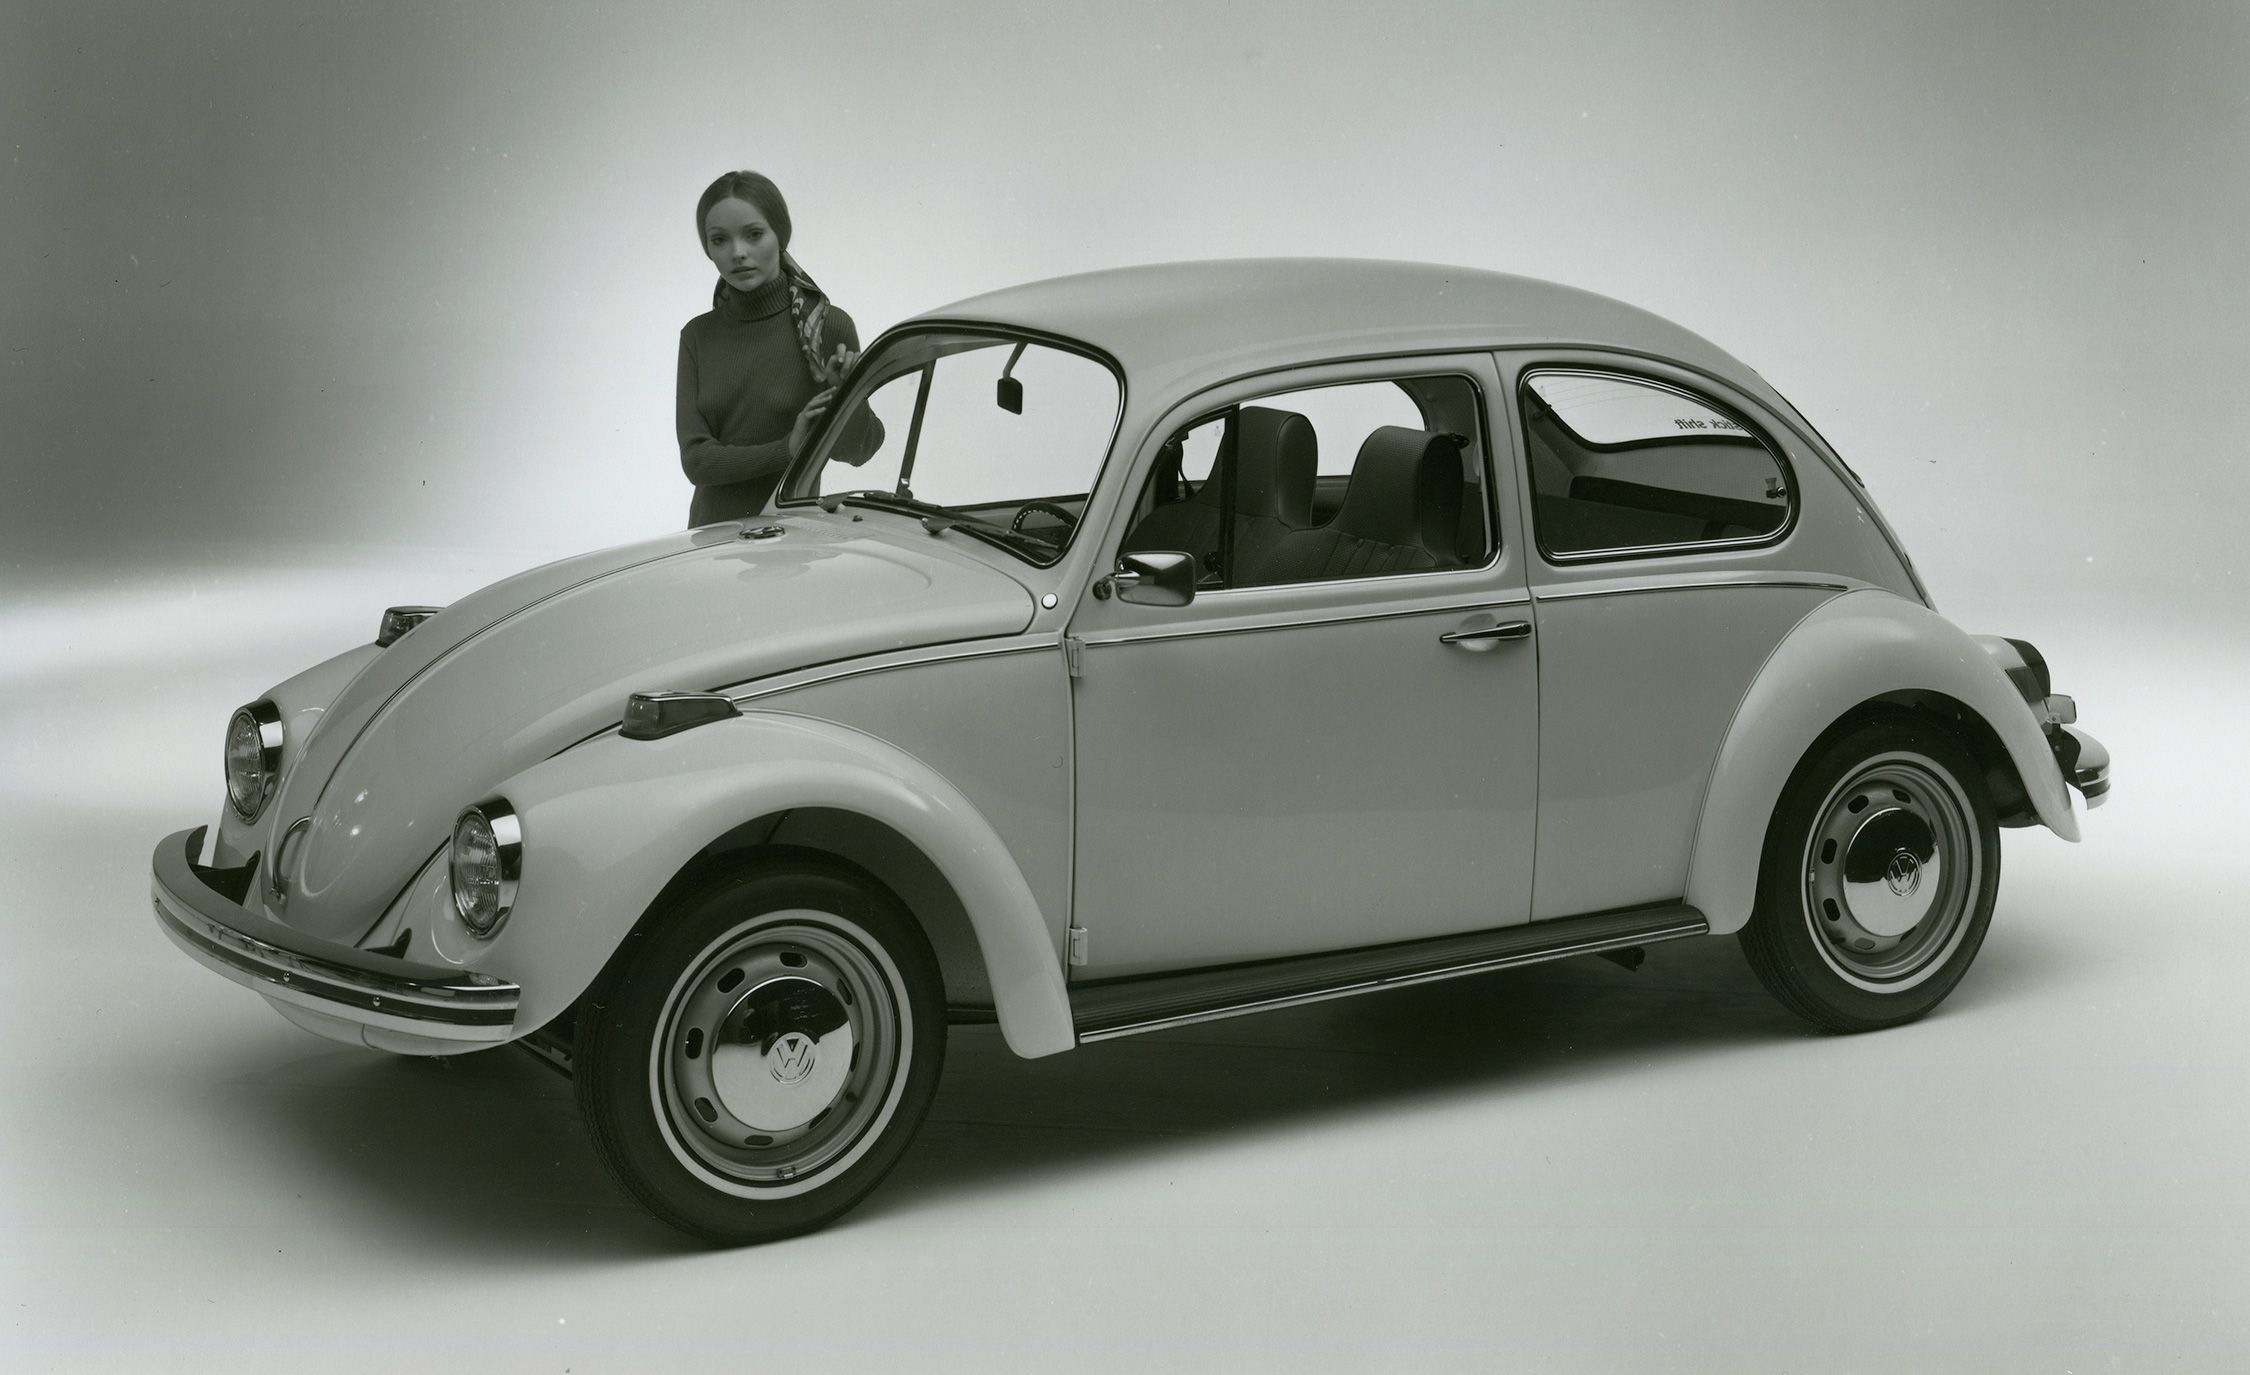 volkswagen beetle models by year old and classic vw bugs stick shift electrical circuit diagram vw beetle early model stick [ 2250 x 1375 Pixel ]